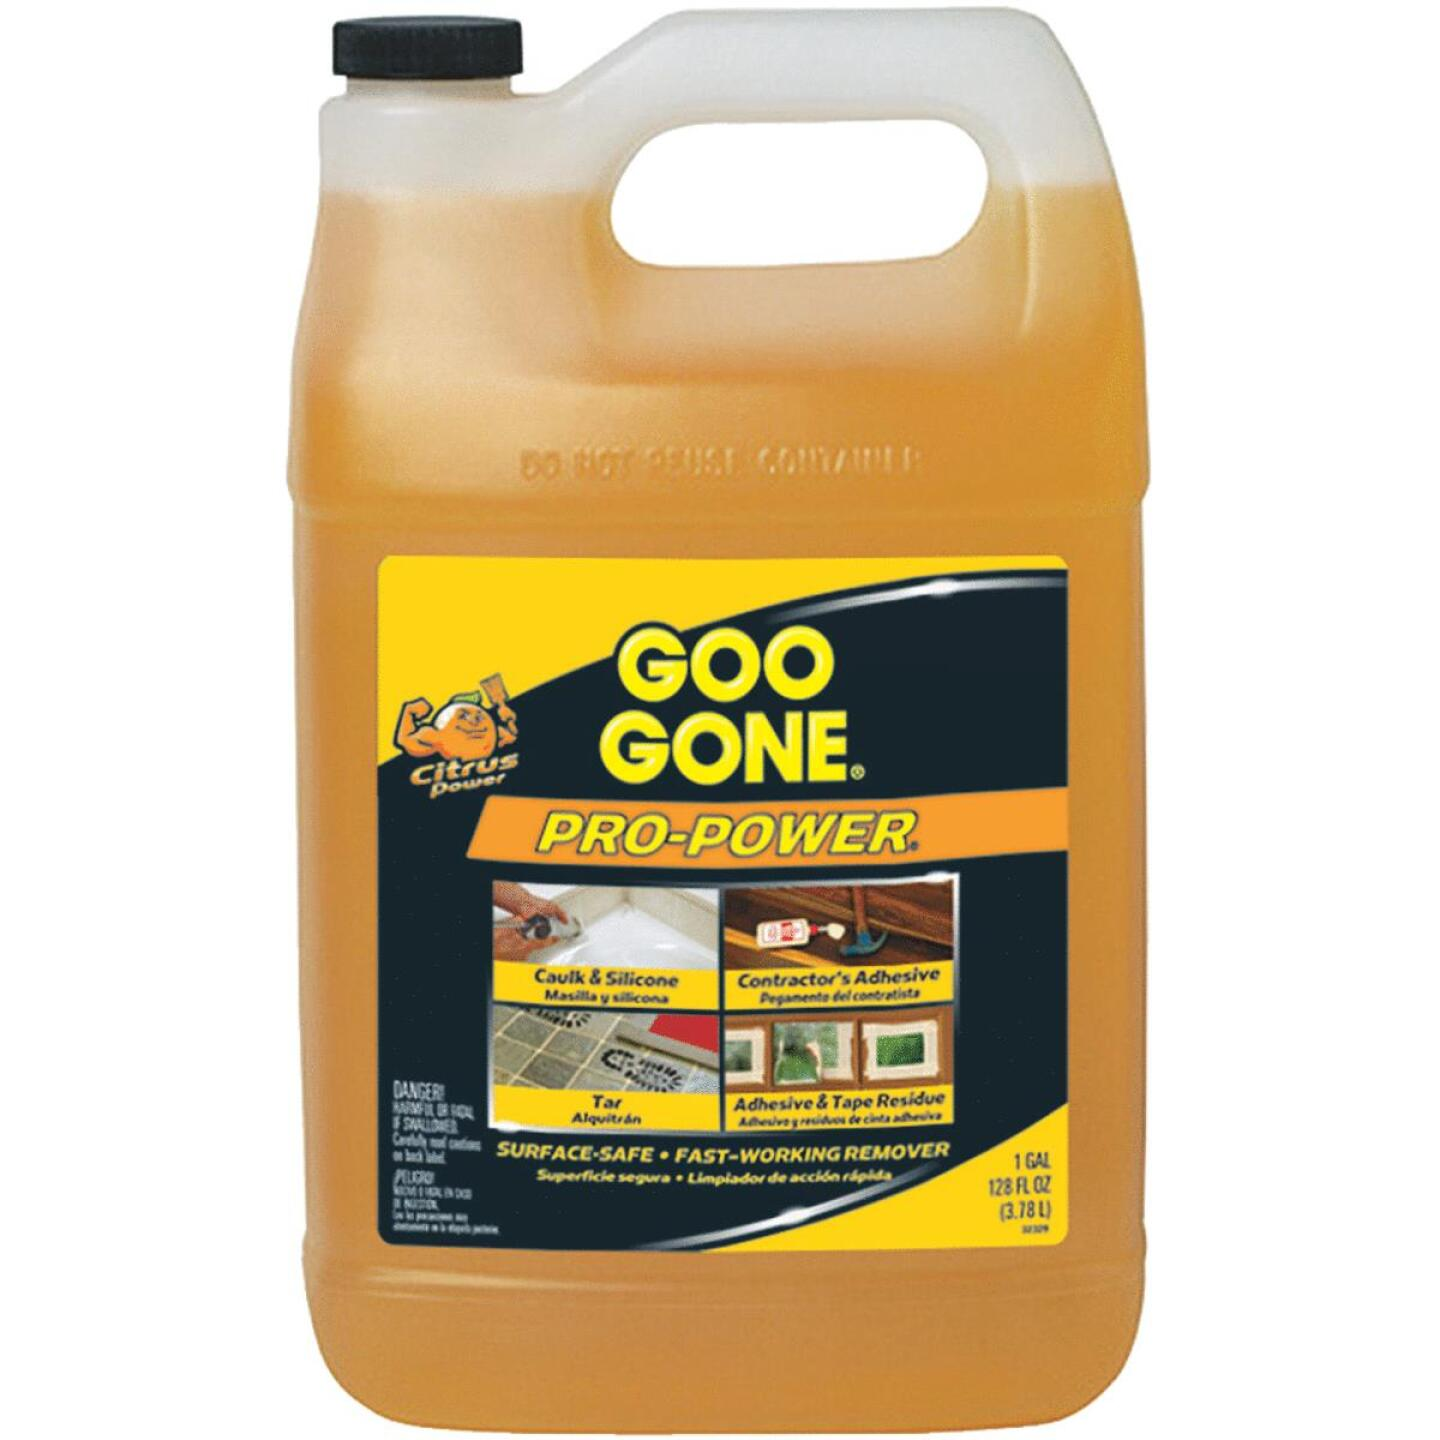 Goo Gone 1 Gal. Pro-Power Adhesive Remover Image 82